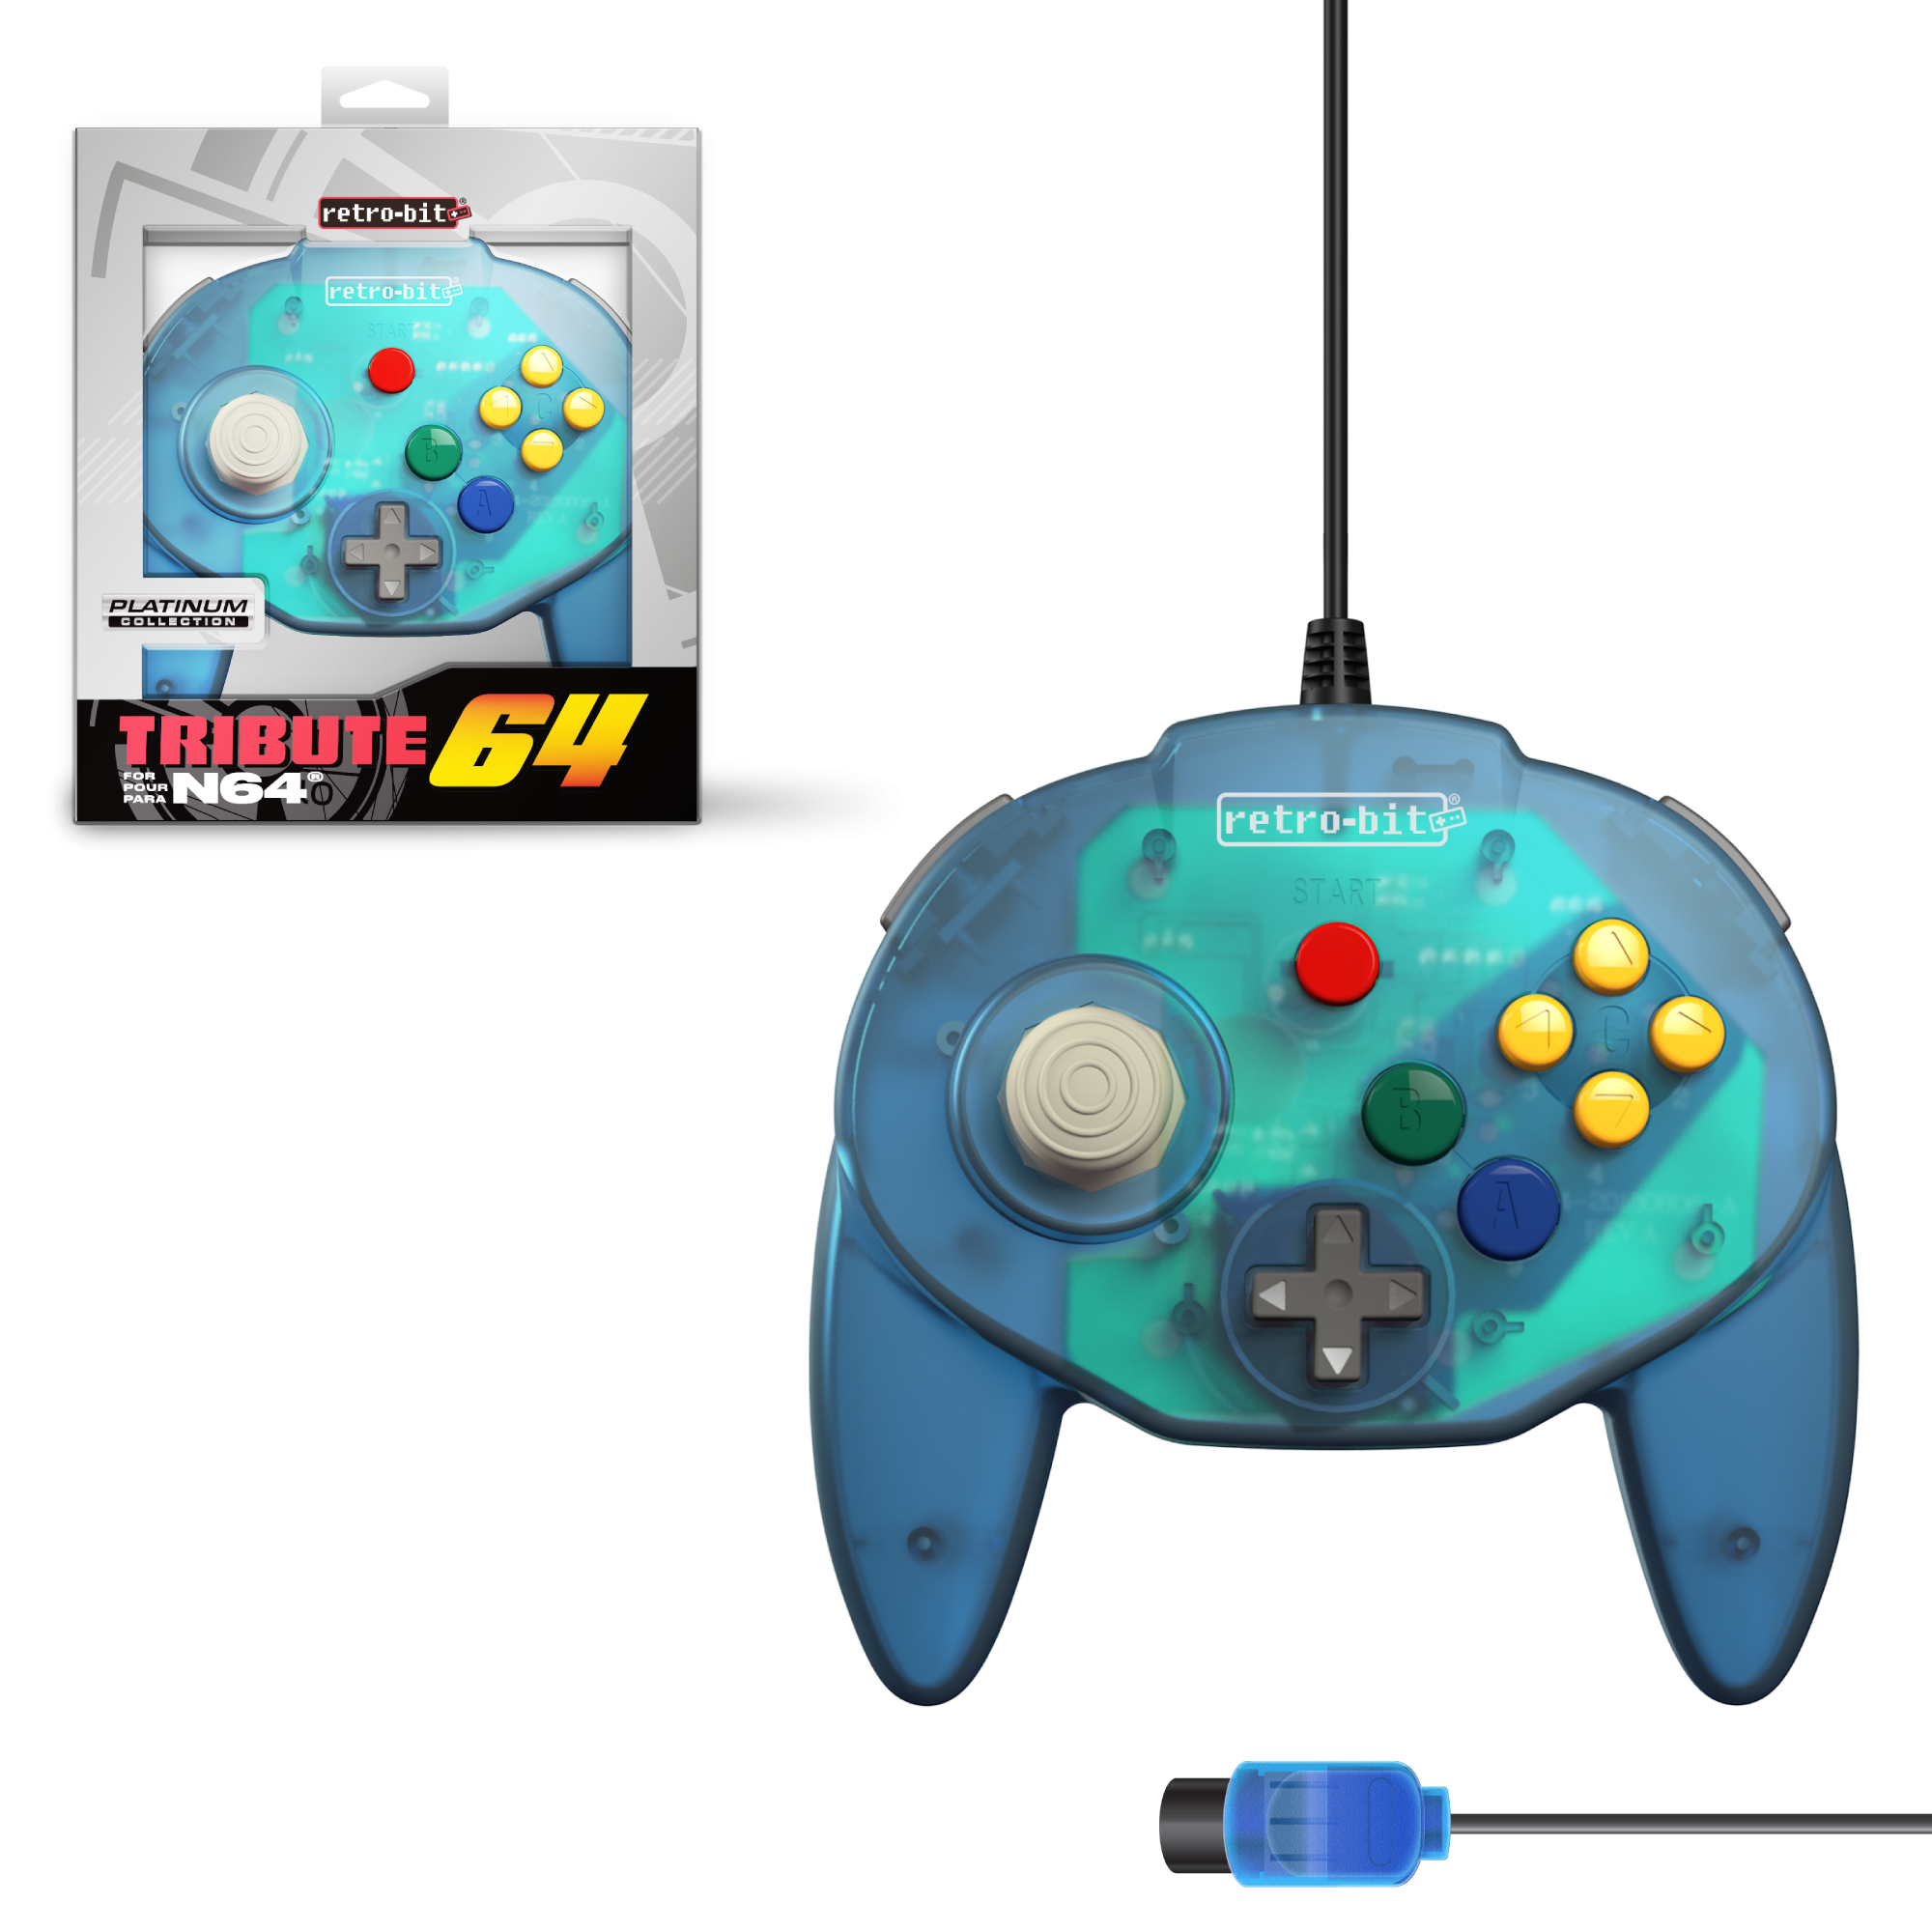 Tribute64 Forest Green - N64 Port